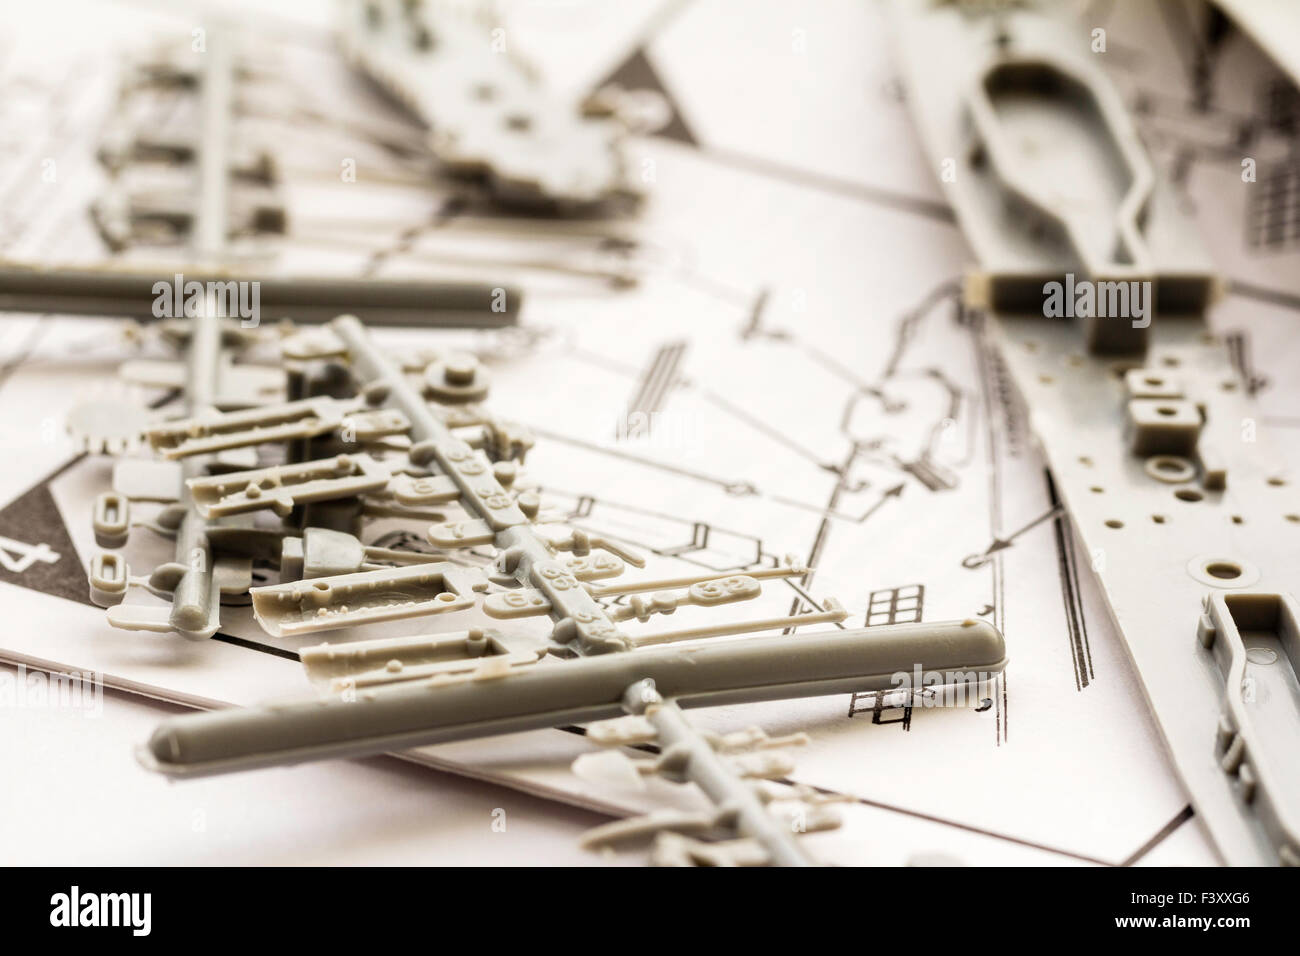 Plastic model kit. Airfix 1/600 scale model kit of second world war destroyer. Grey plastic parts connected to spur - Stock Image